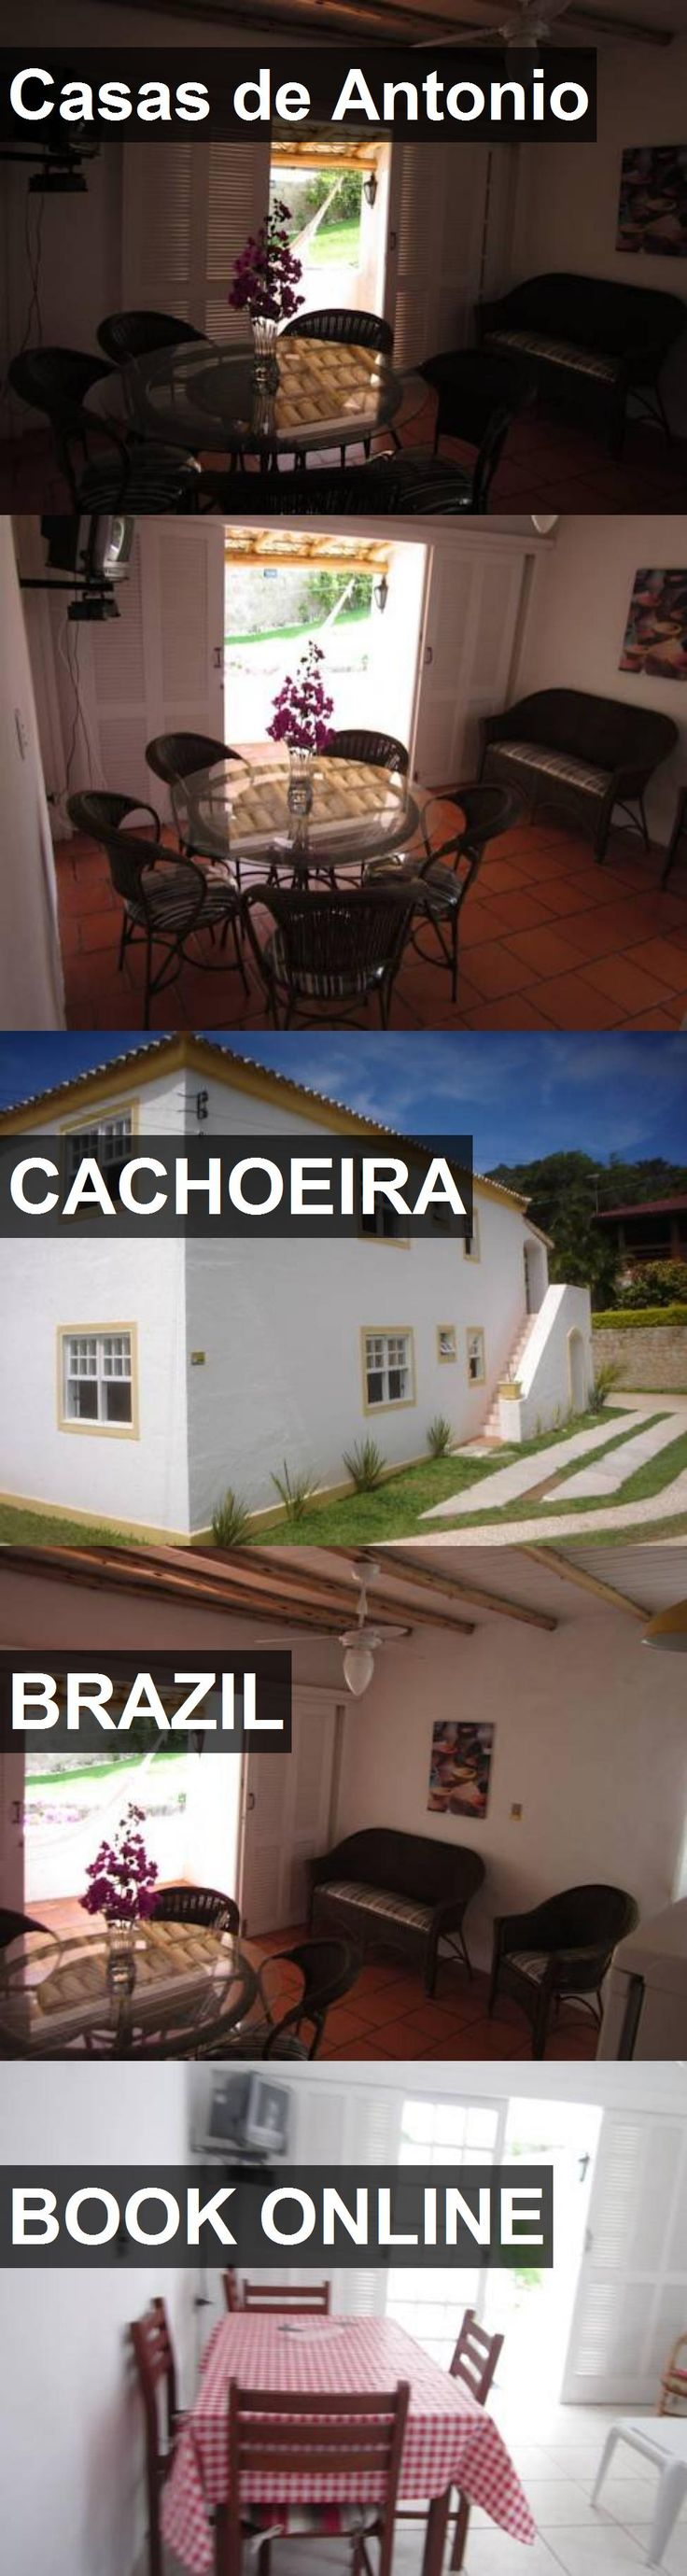 Hotel Casas de Antonio in Cachoeira, Brazil. For more information, photos, reviews and best prices please follow the link. #Brazil #Cachoeira #travel #vacation #hotel